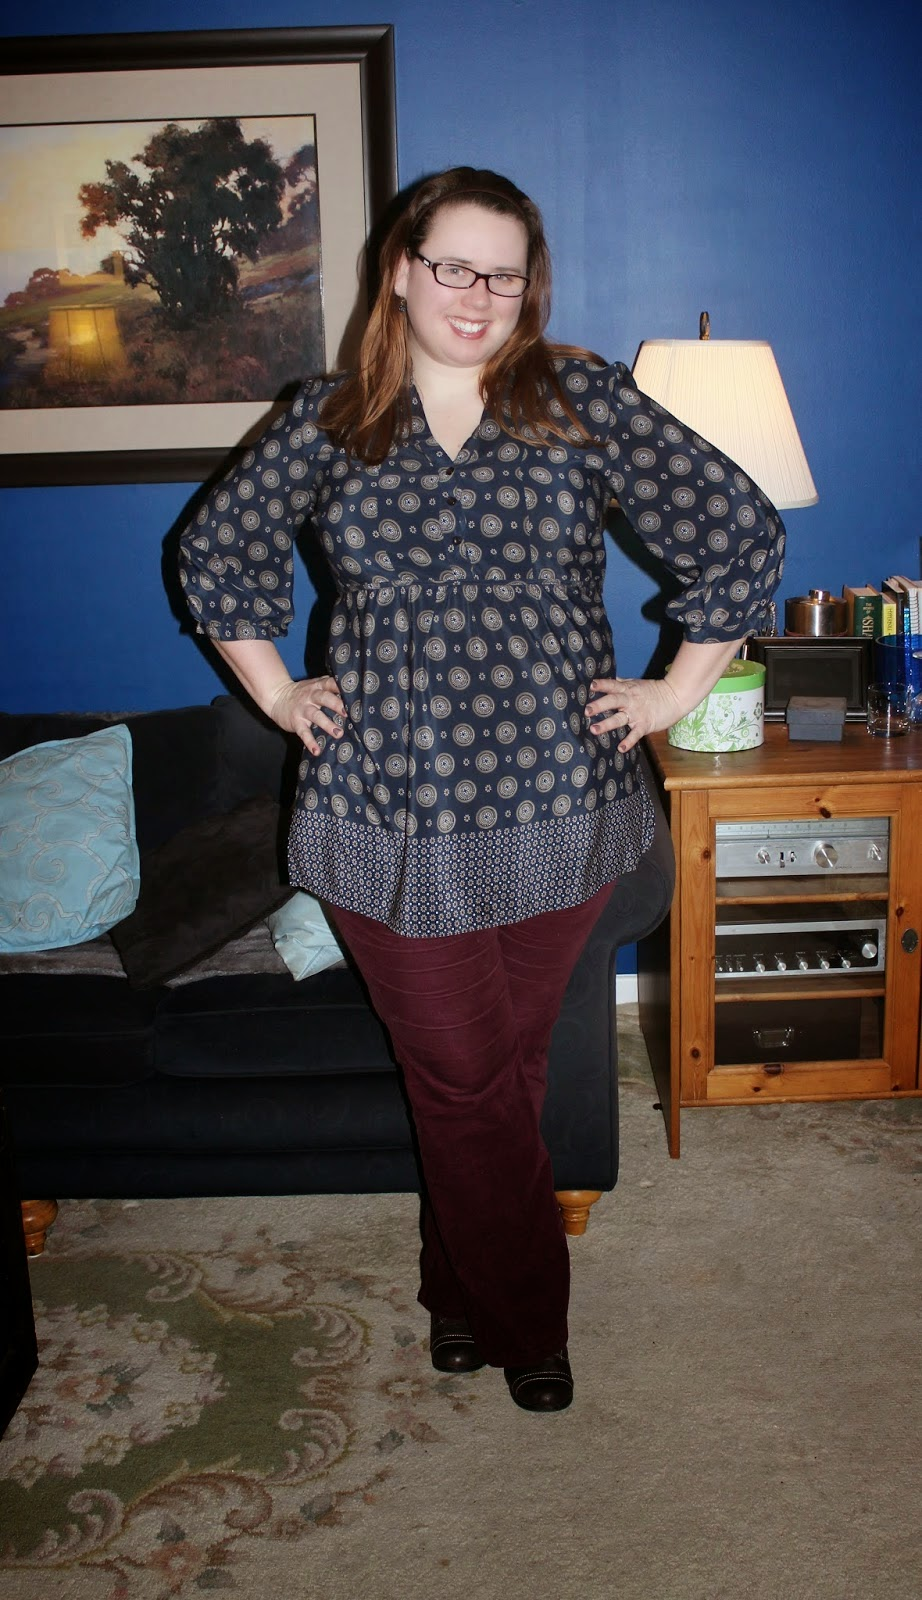 http://whatmamawear.blogspot.ca/2015/01/navy-and-wine.html